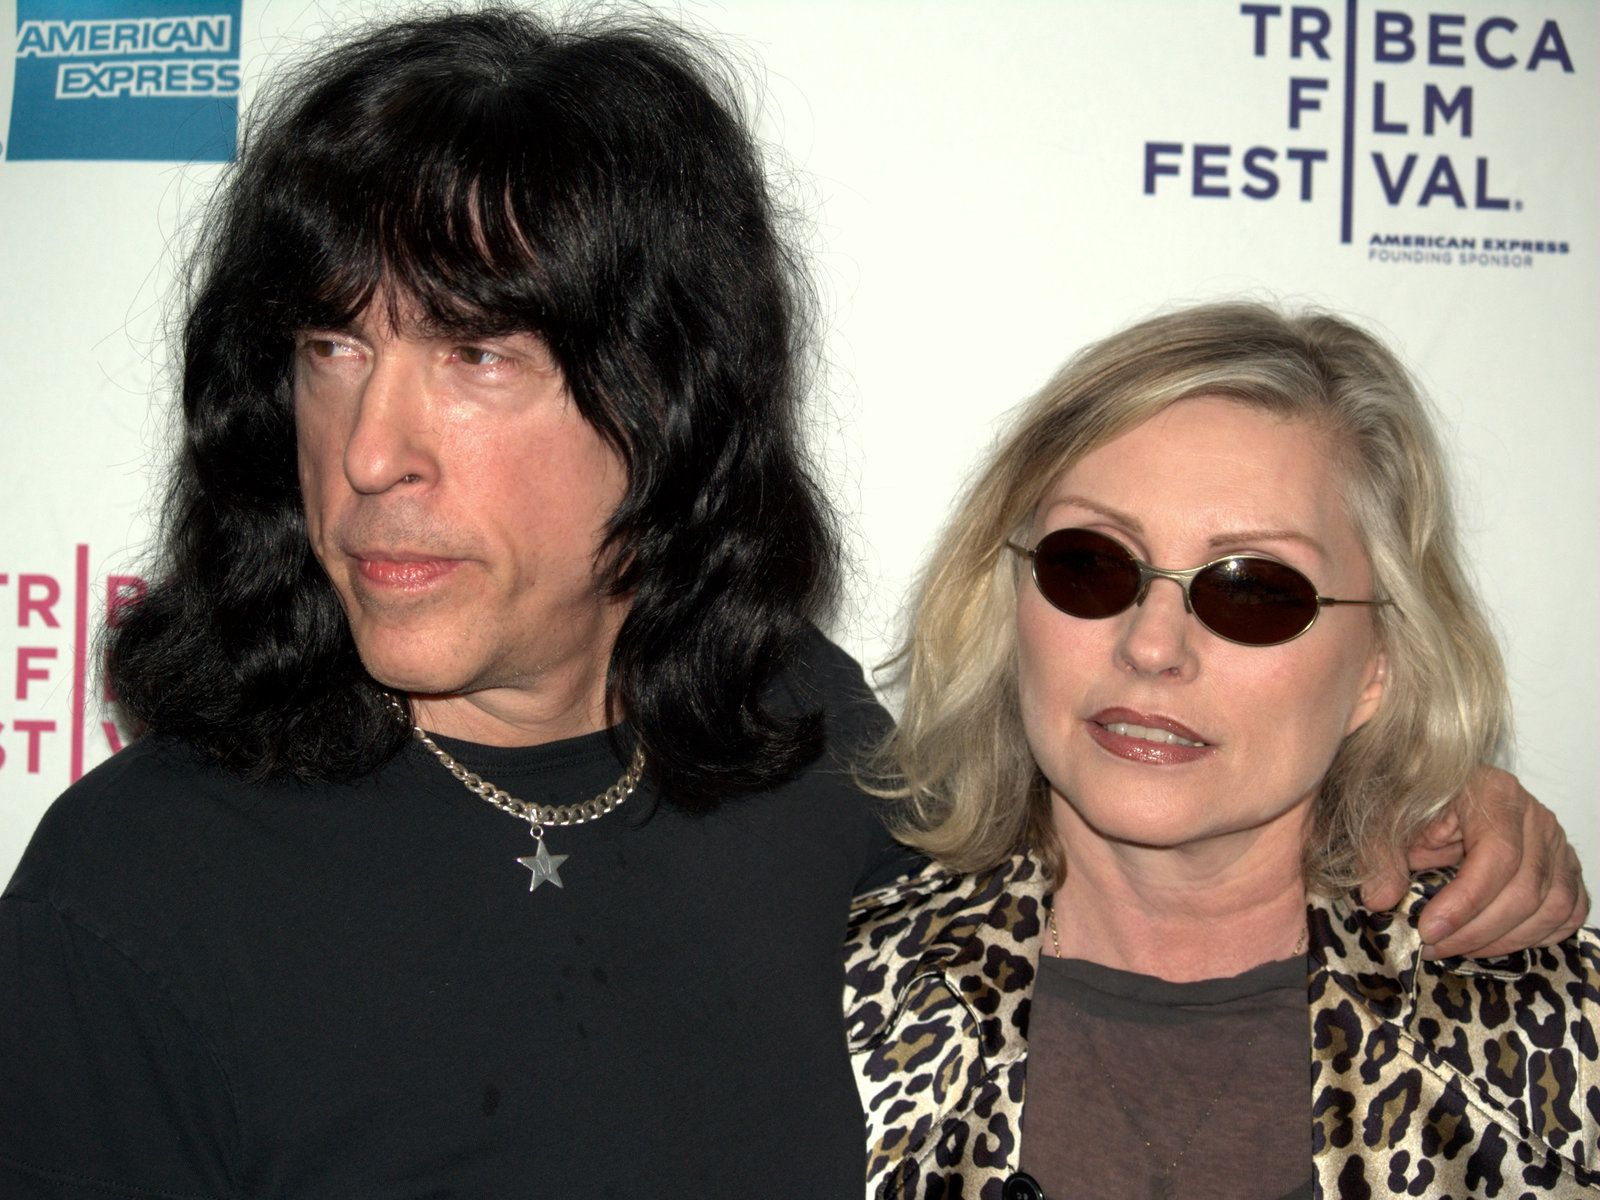 Marky Ramone and Debbie Harry at the 2009 Tribeca Film Festival